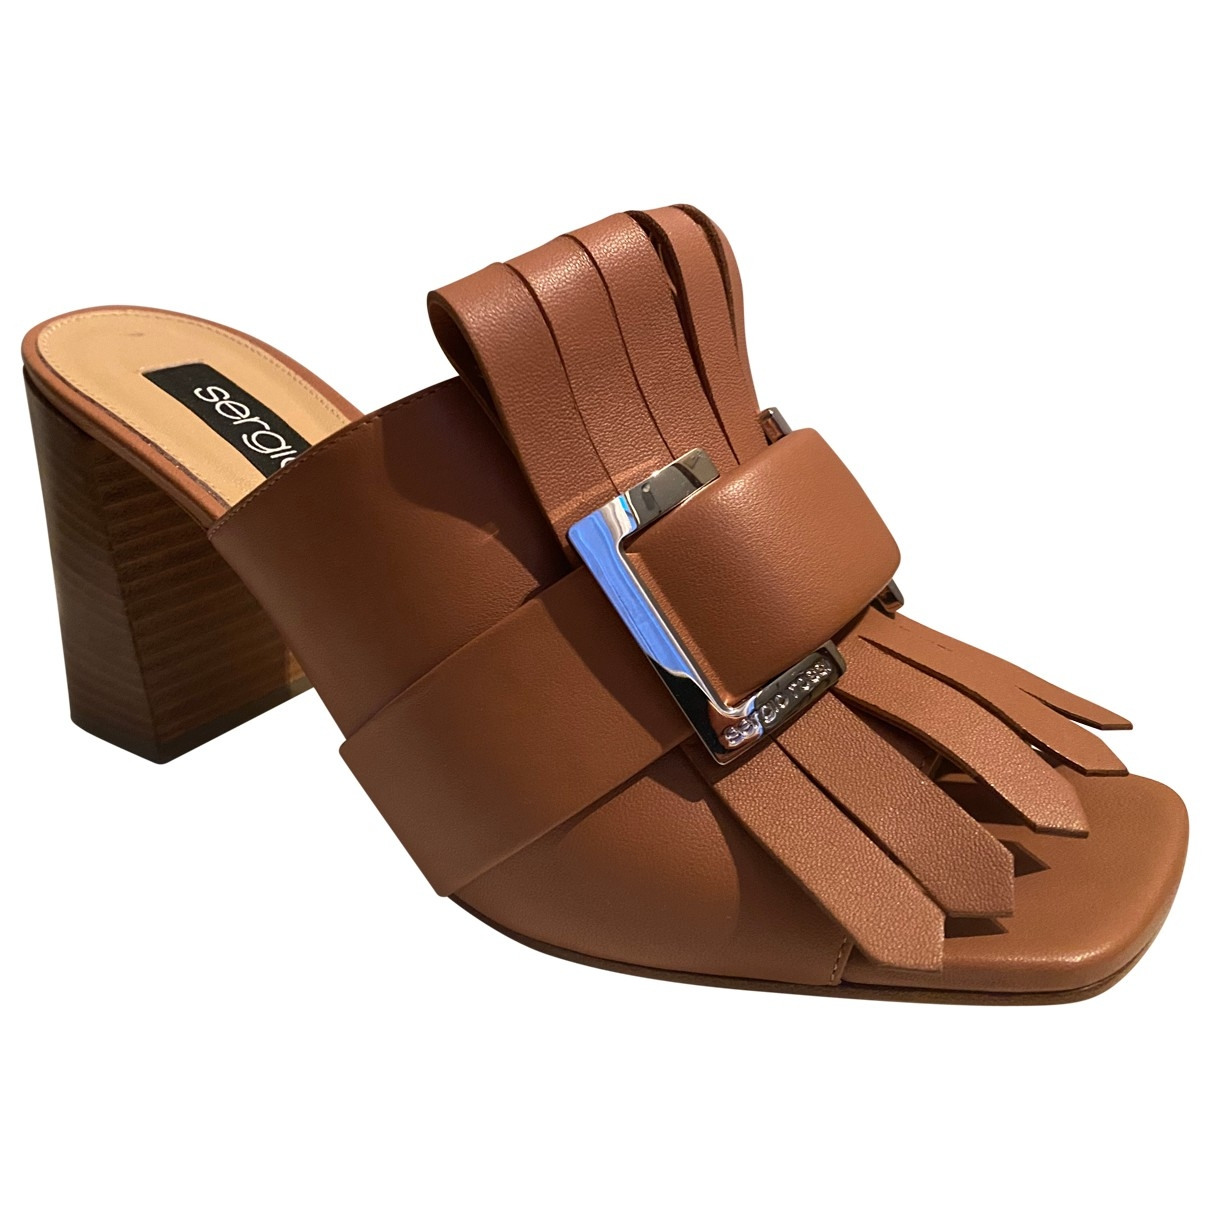 Sergio Rossi \N Brown Leather Sandals for Women 39.5 EU